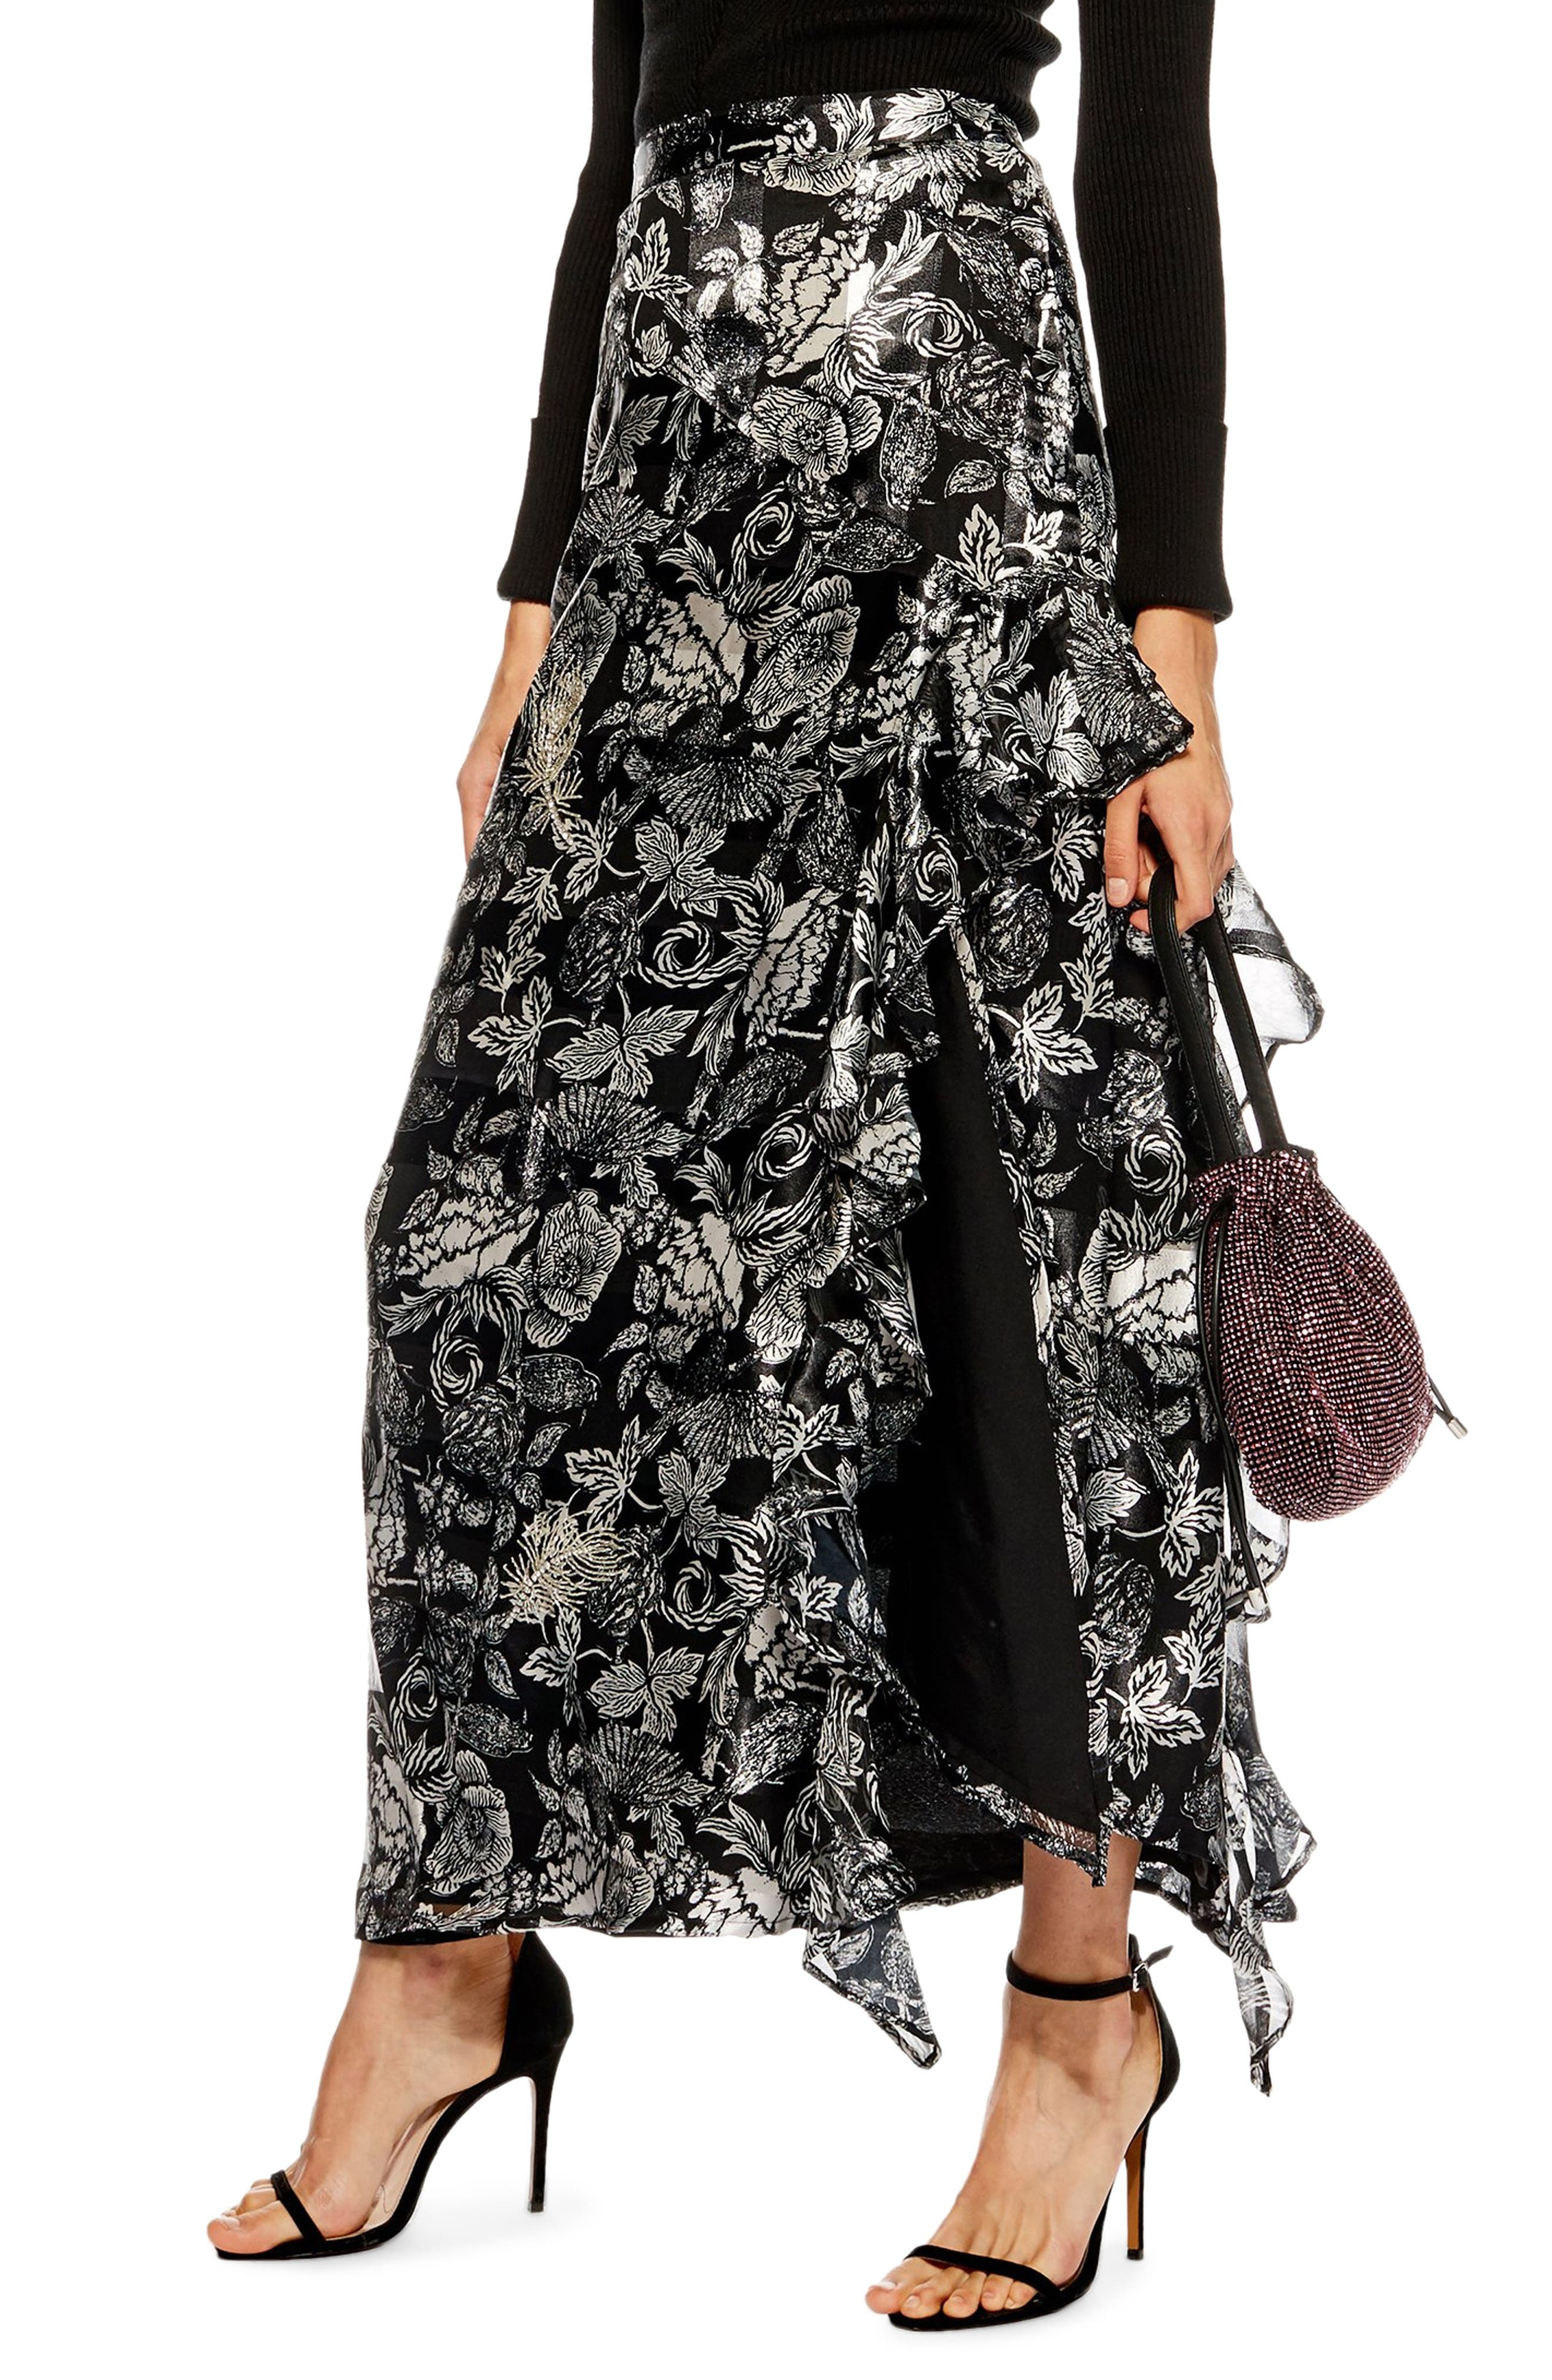 Topshop Feather Embellished Floral Maxi Skirt, US (fits like 0-2) - Metallic